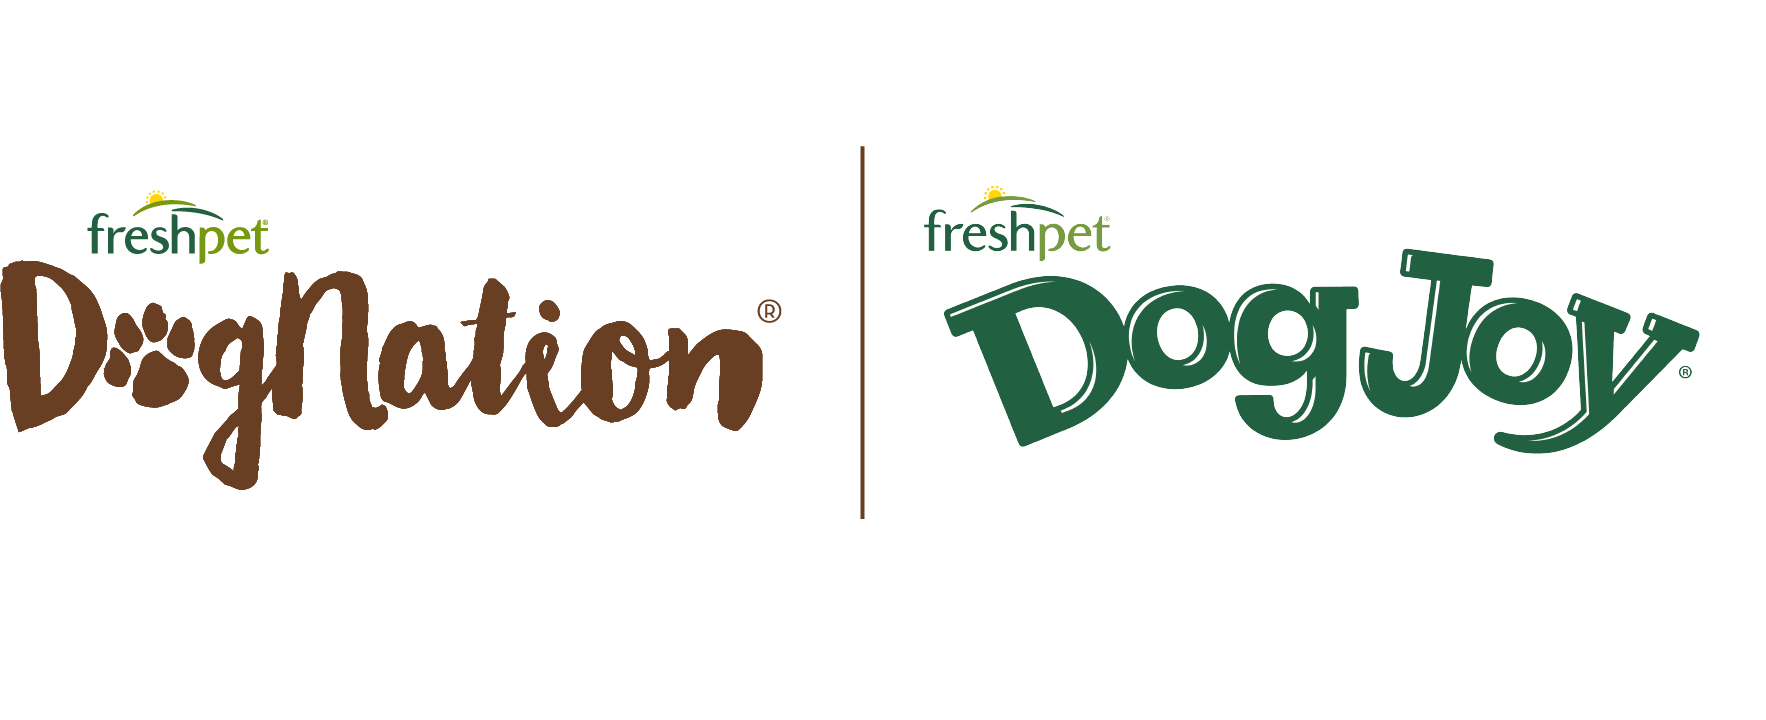 Freshpet logo clipart graphic library download Freshpet Healthy Dog Treats For Training And Snacking graphic library download